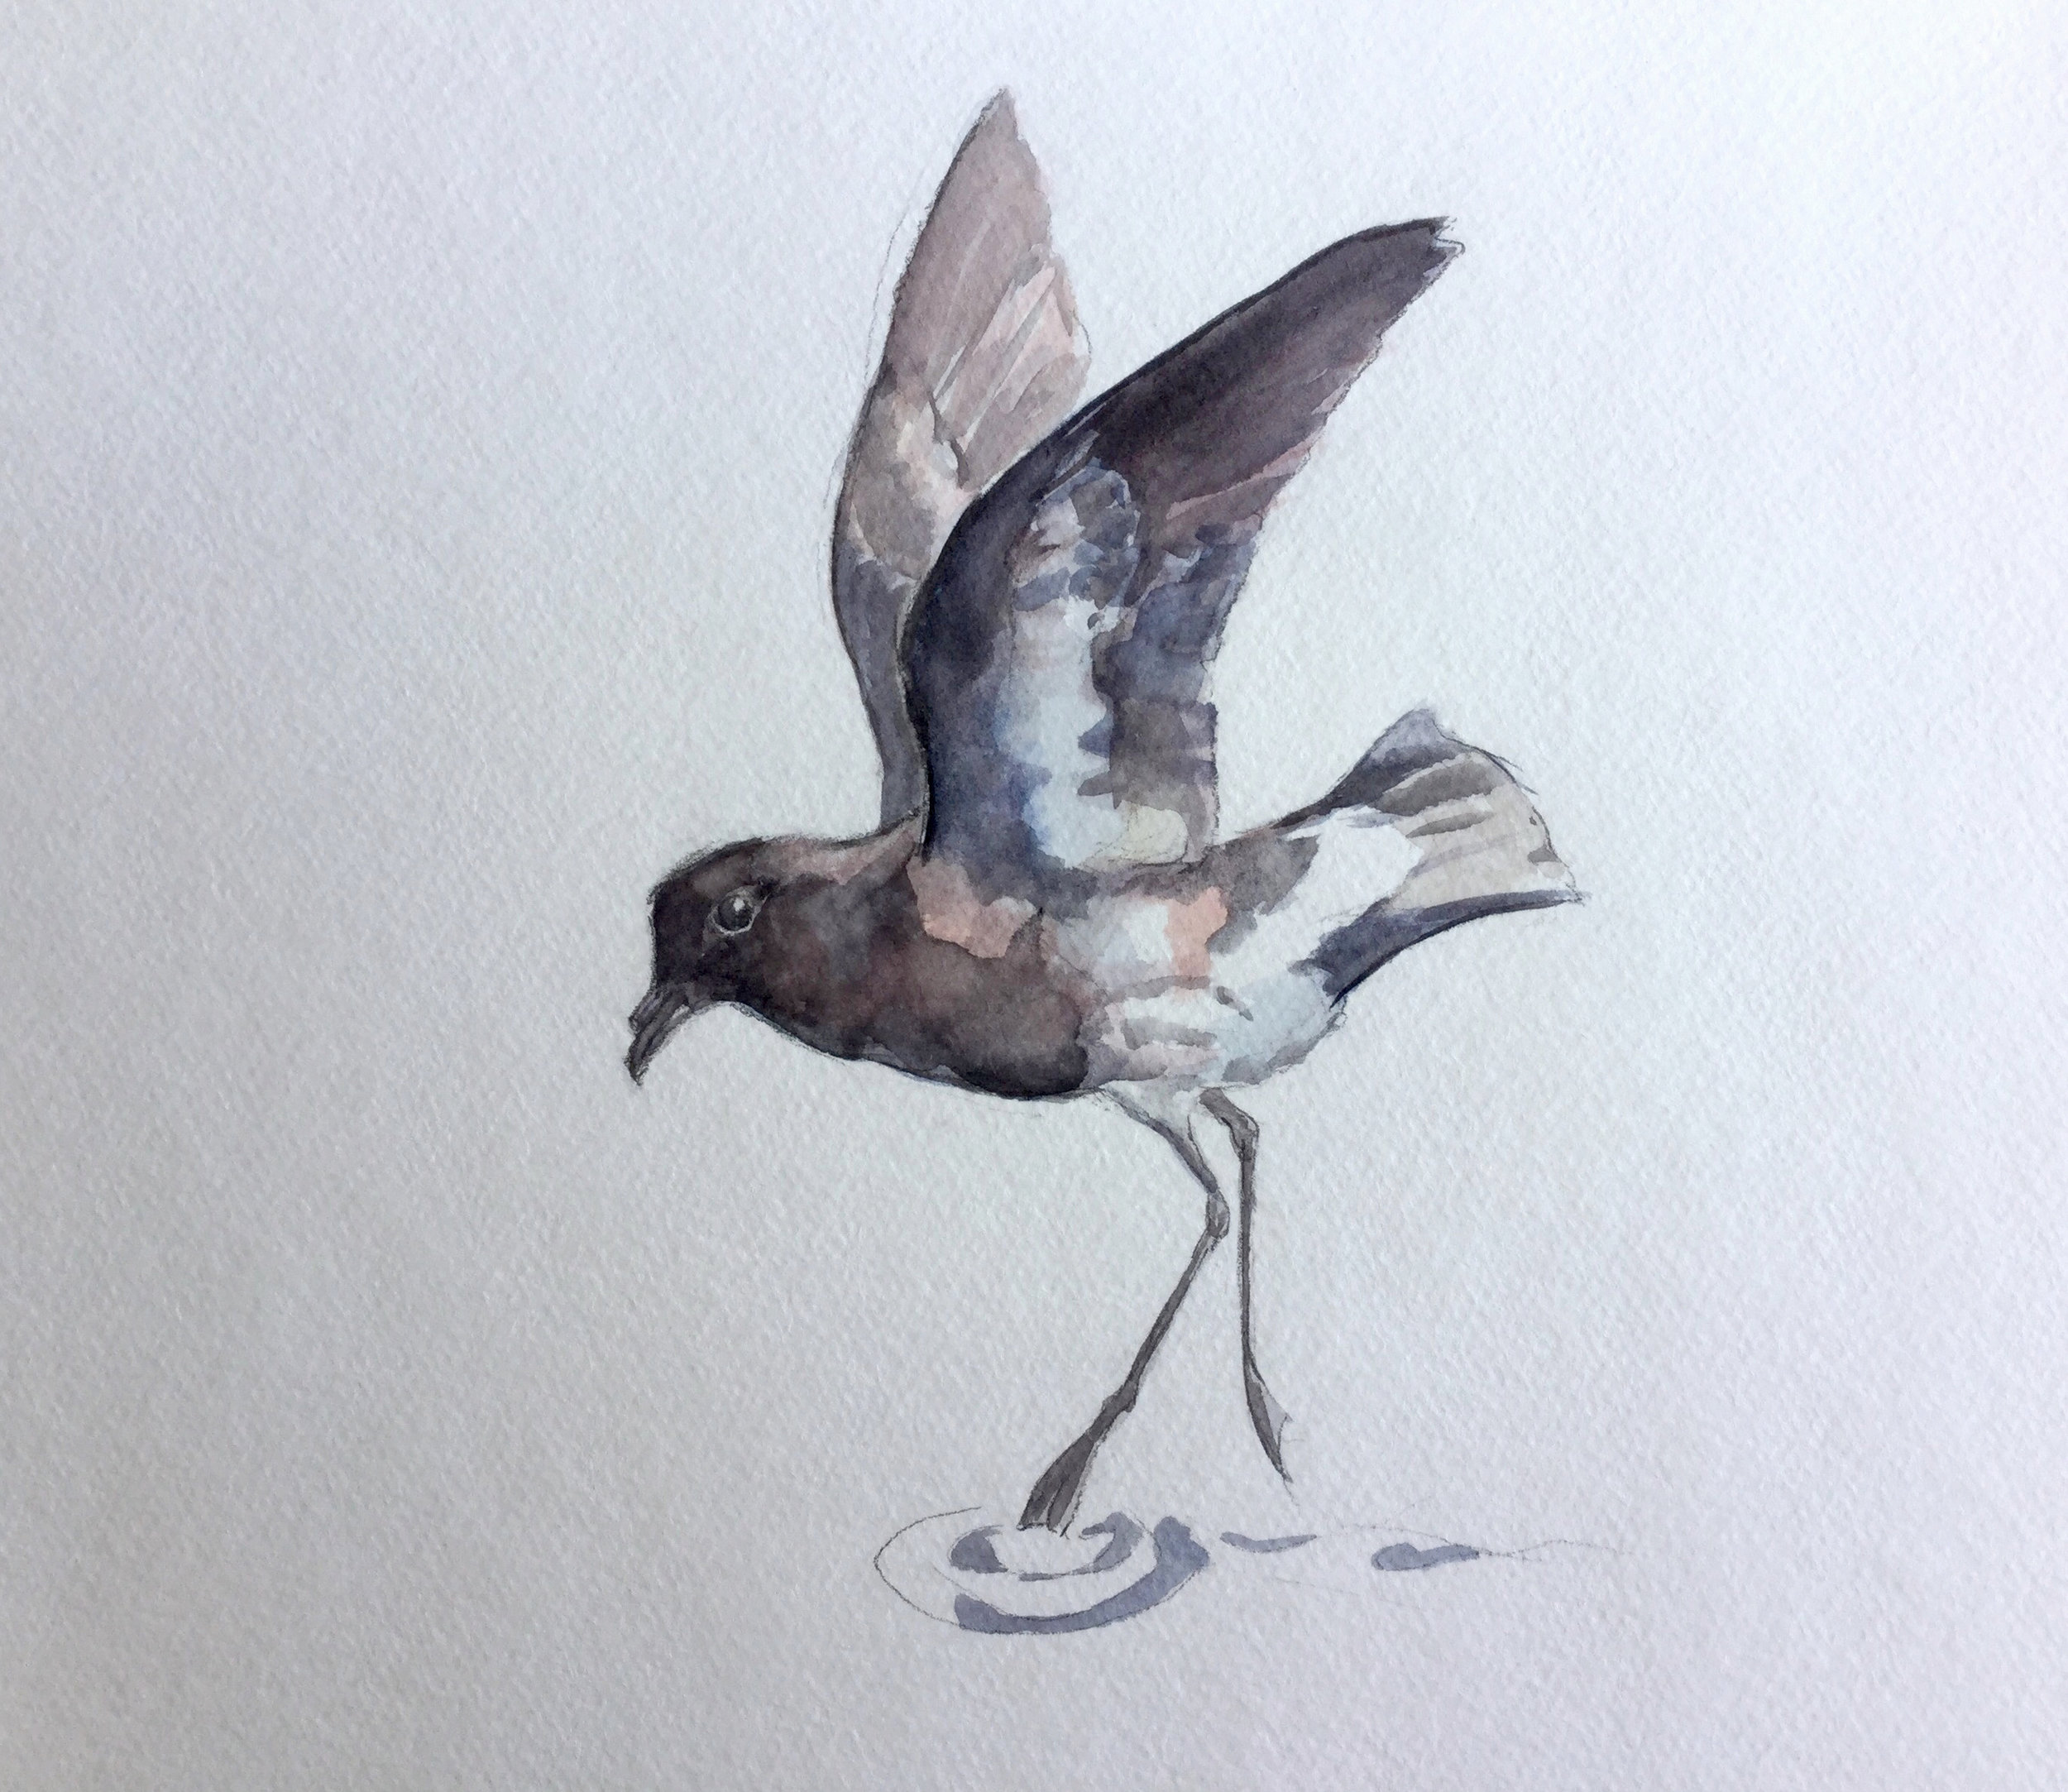 The Long-Lost New ZeAland Storm- Petrel (Click to enlarge)